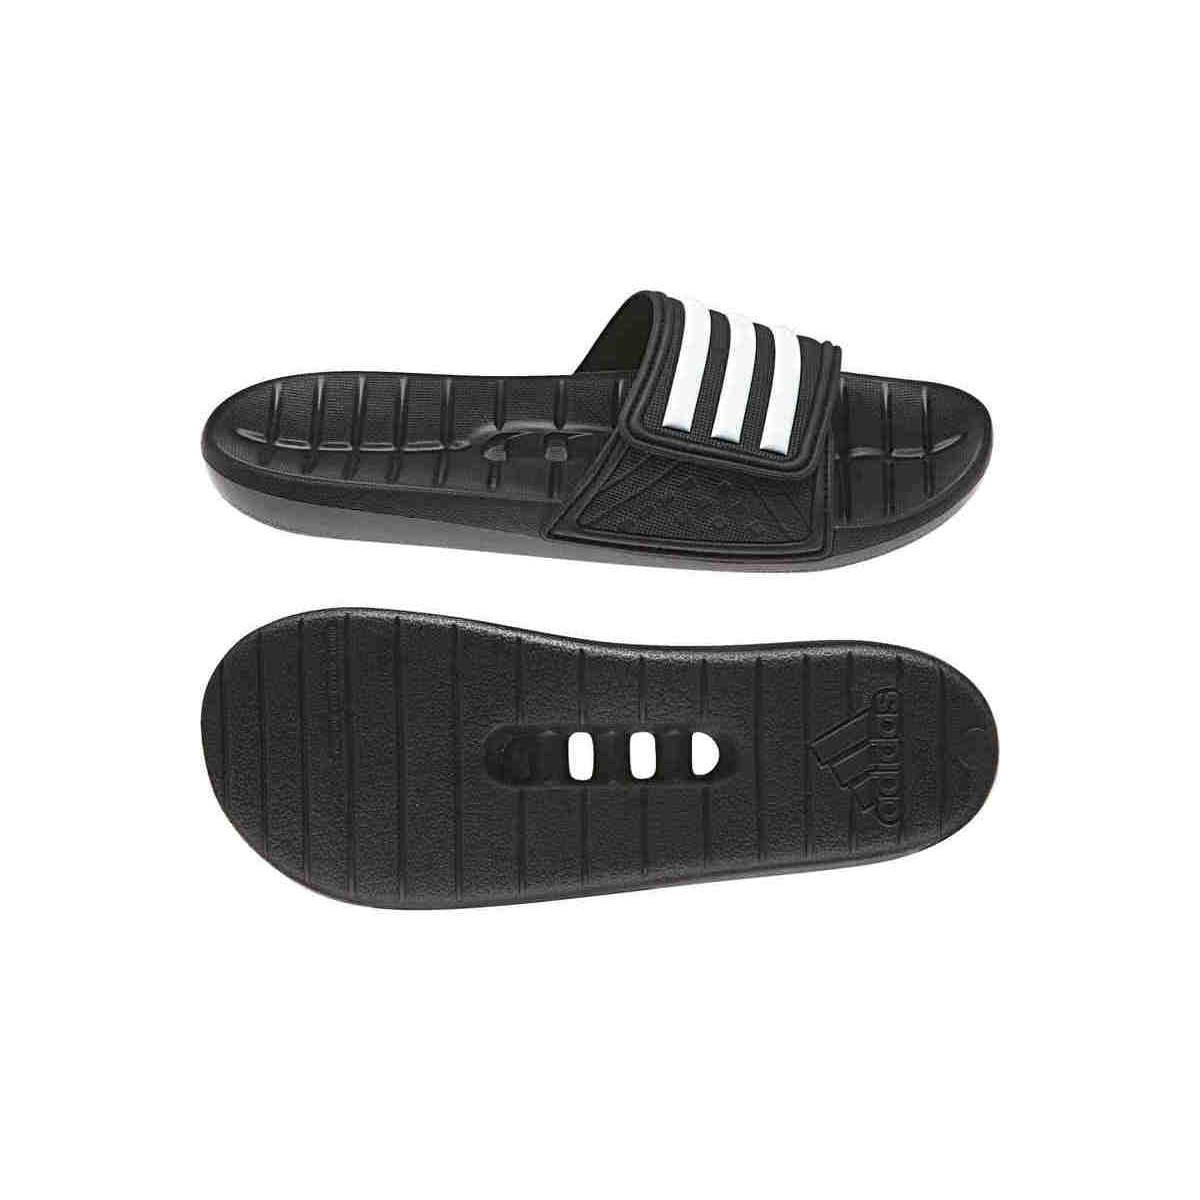 8457730c6a480 Adidas Kyaso Adj Men s Mules   Casual Shoes In Black in Black - Lyst